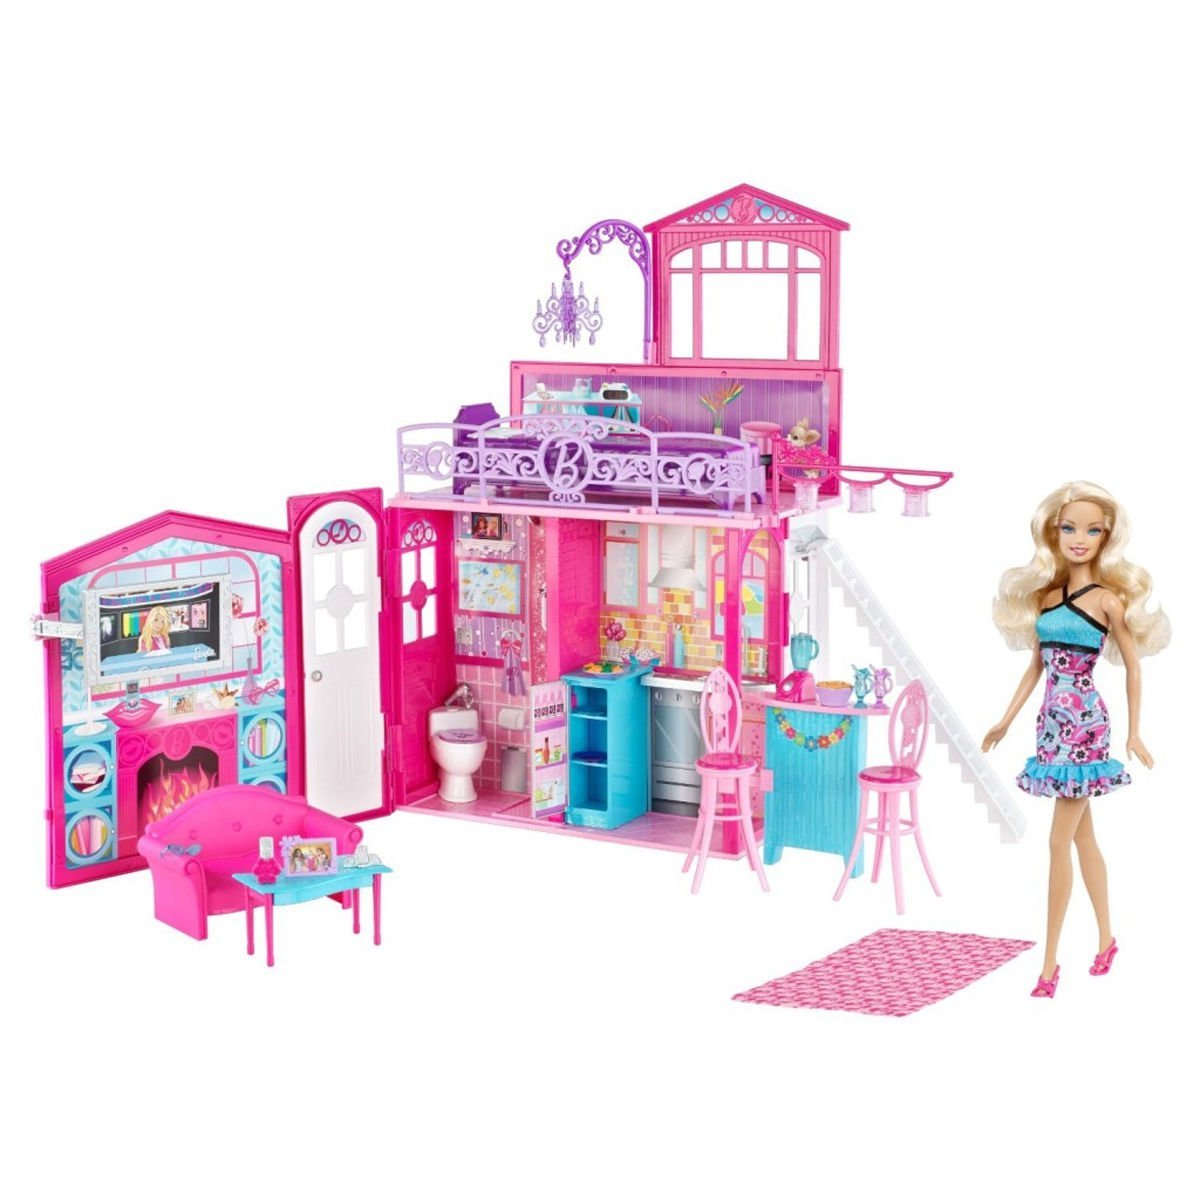 Barbie Glam Kitchen Set: Barbie Glam Vacation House Dollhouse Playset With Doll